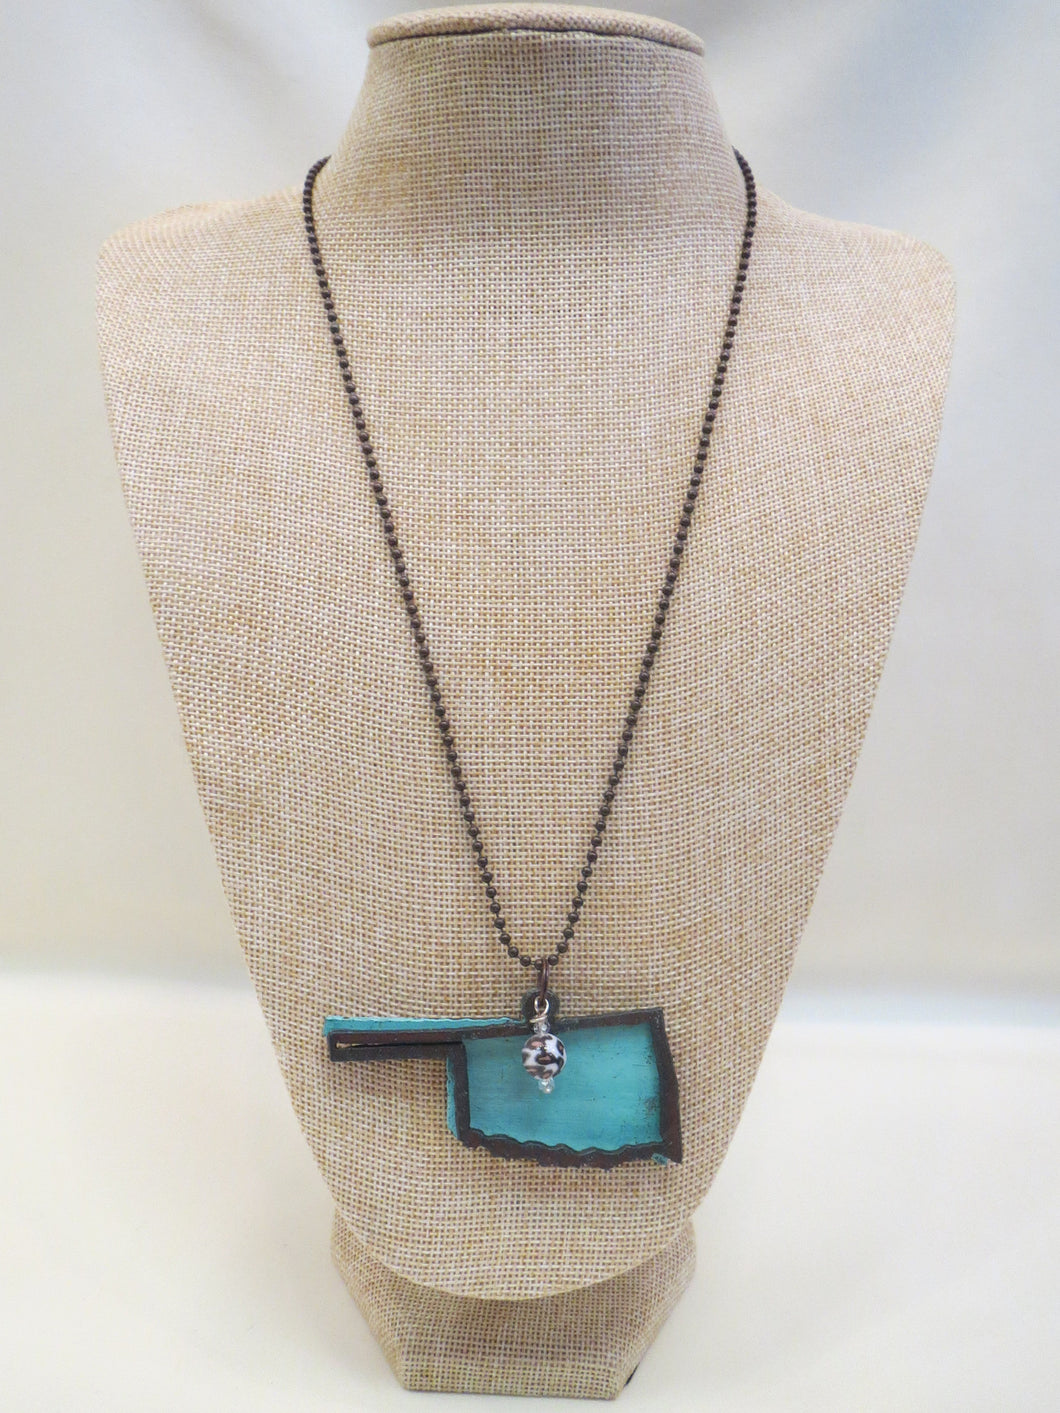 ADO | Hometown Pride Oklahoma Charm Necklace Turquoise - All Decd Out